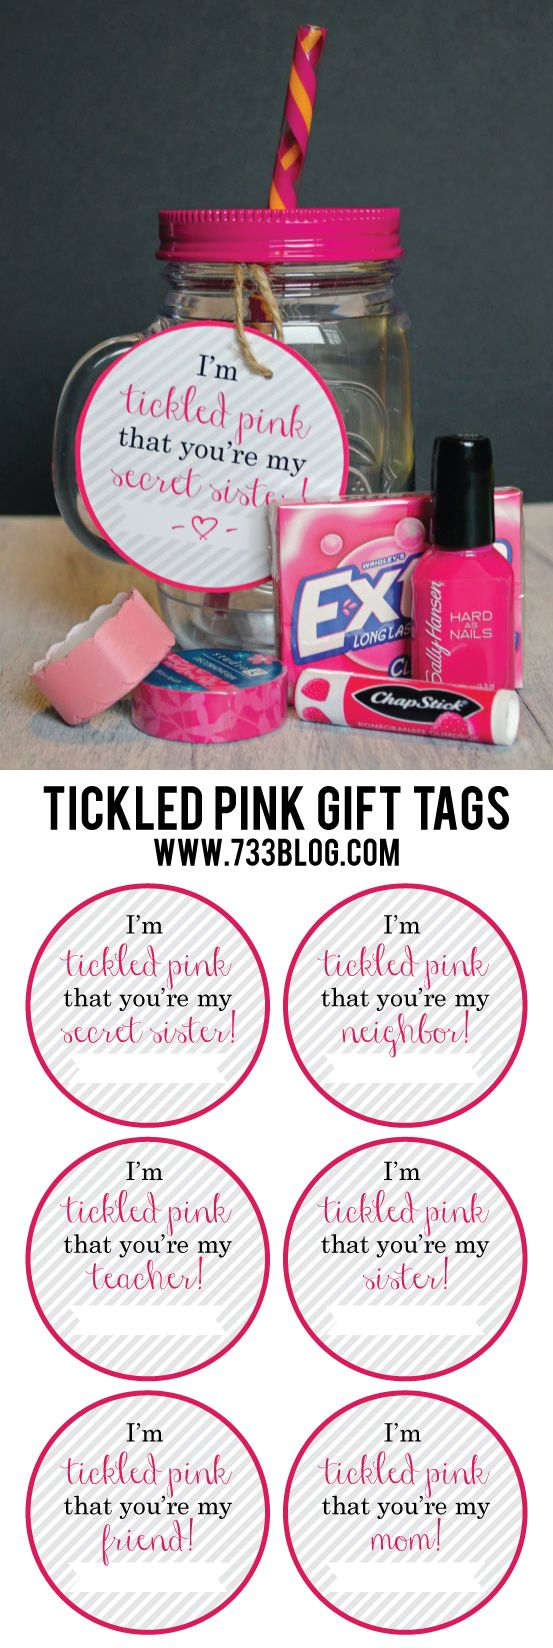 Tickled Pink Gift Idea for Mom, Teacher or Friend!